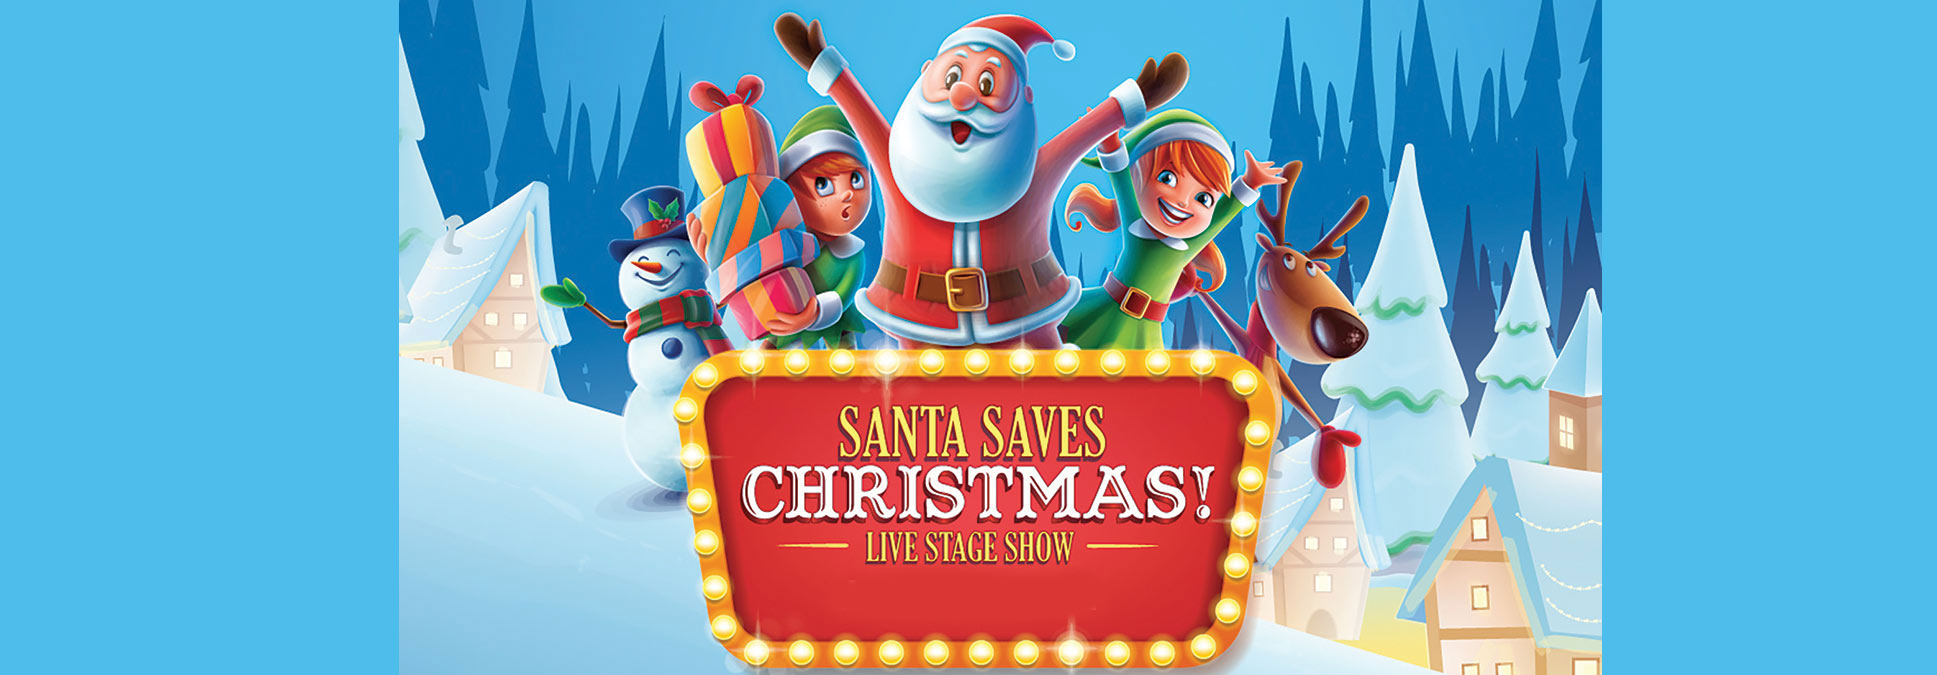 Santa Saves Christmas at the Marcus Performing Arts Center in Milwaukee